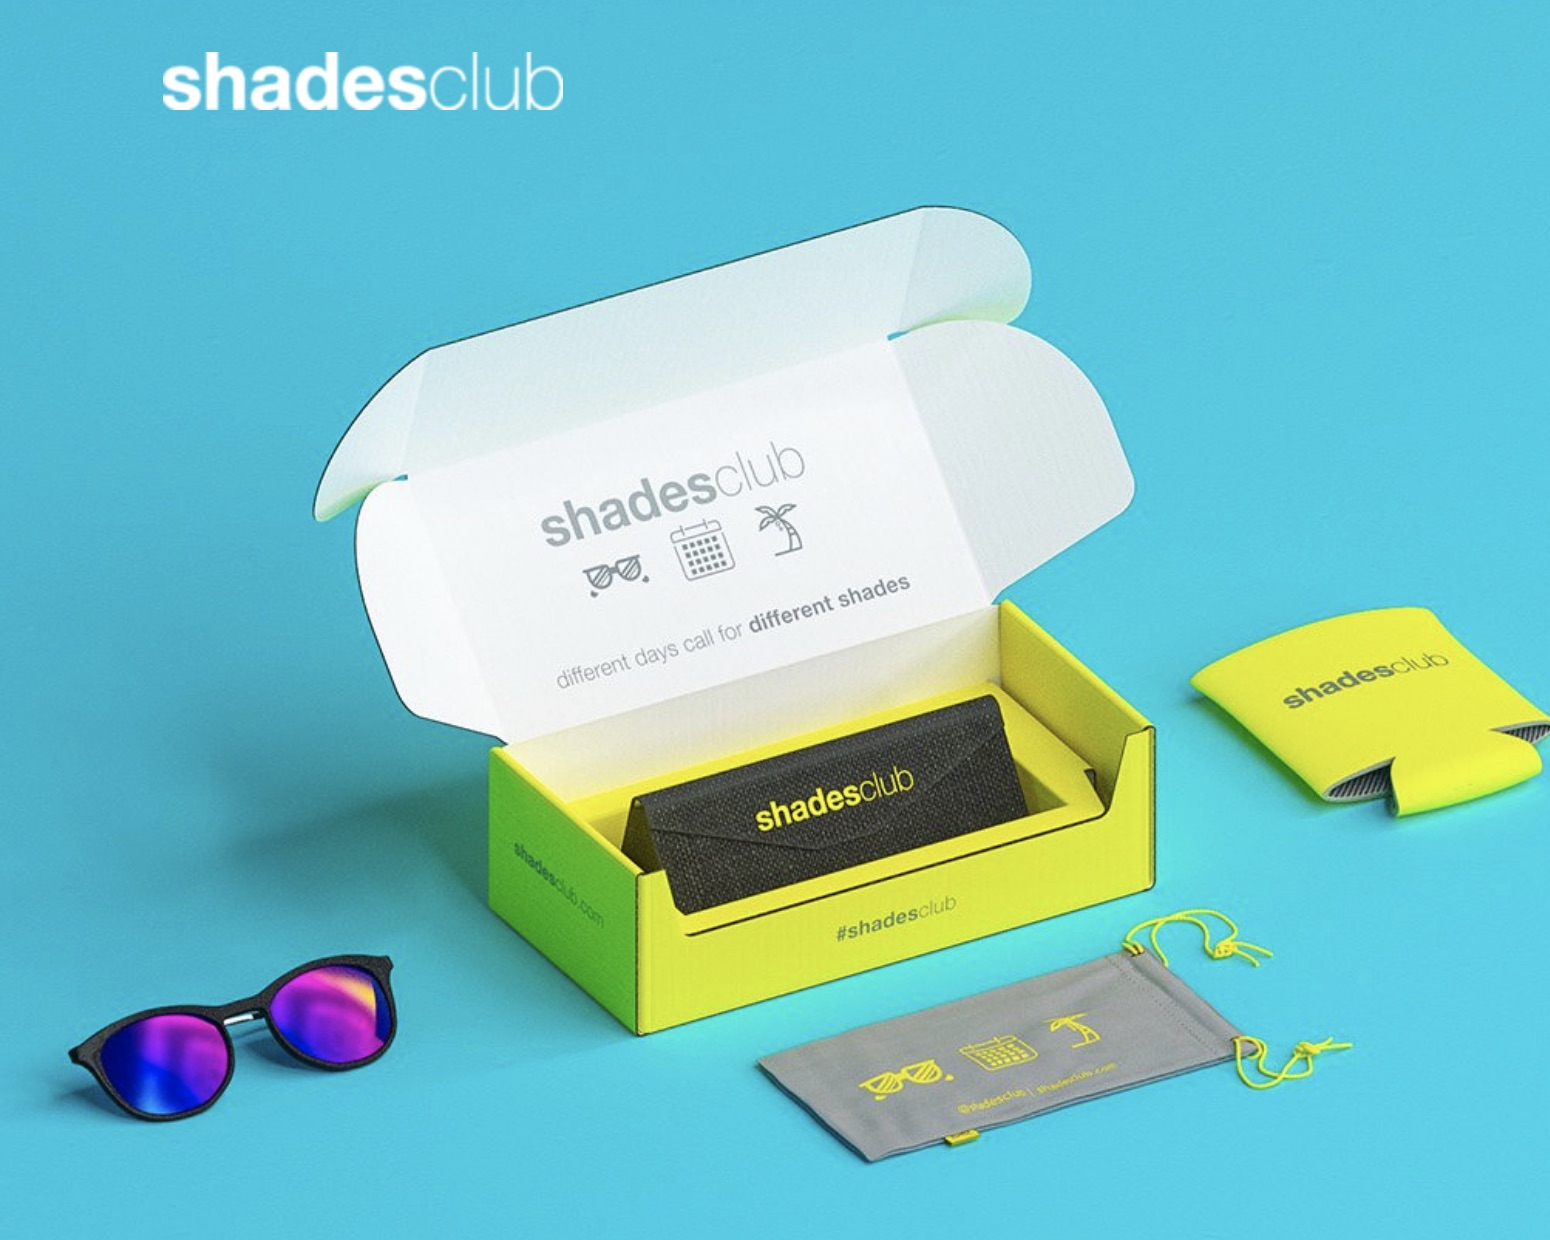 Shades Club the world's first monthly subscription box for sunglasses